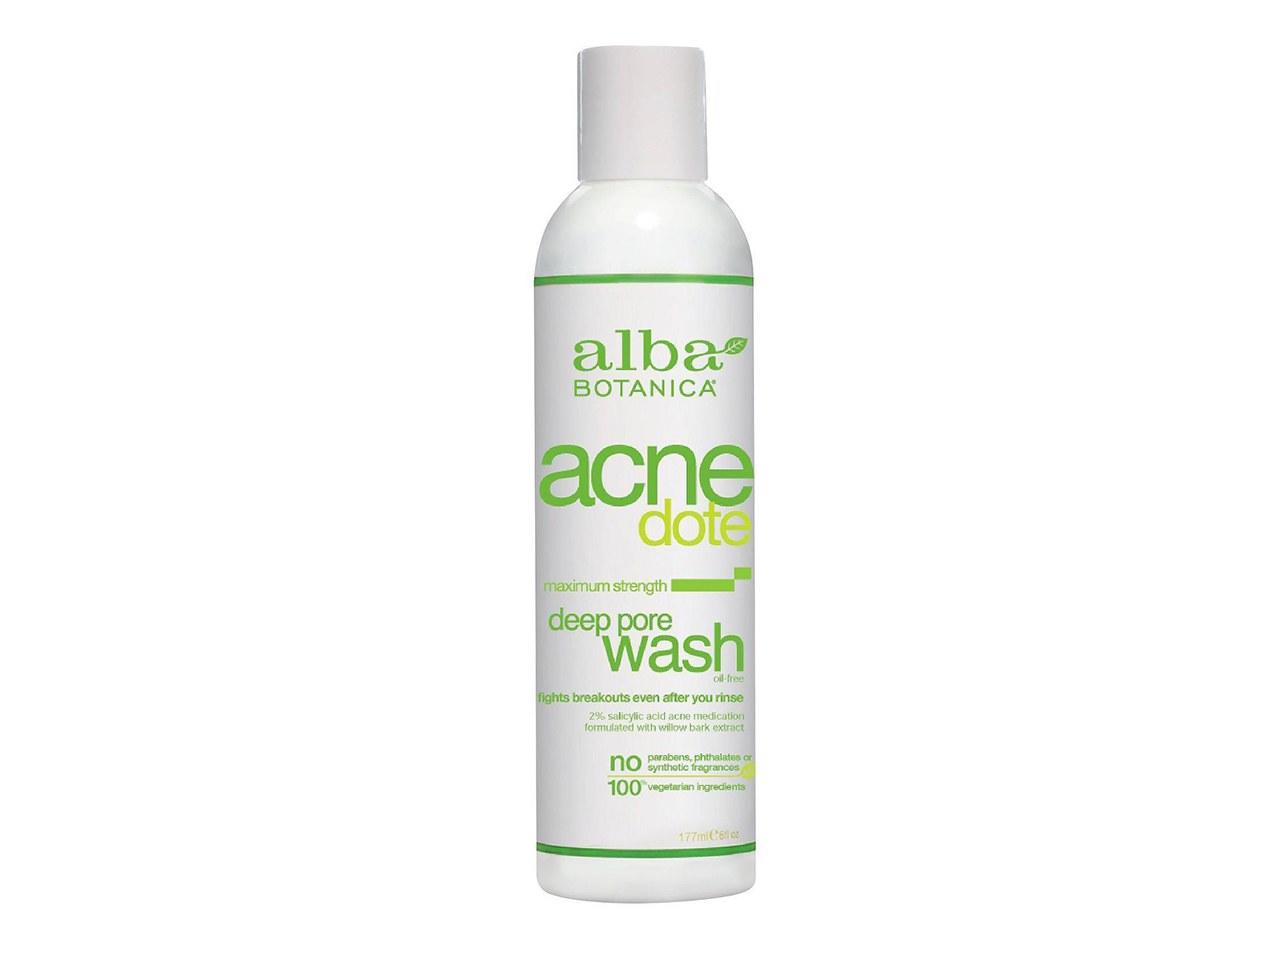 """<p>""""I love this cleanser because it's gentle and very effective at settling my breakouts."""" —Juanita Pearl Johnson, 28</p> <p><strong>Buy it:</strong> $6, <a rel=""""nofollow"""" href=""""https://www.target.com/p/alba-acnedote-deep-pore-wash-6oz/-/A-13323263"""" rel=""""nofollow"""">target.com</a></p>"""